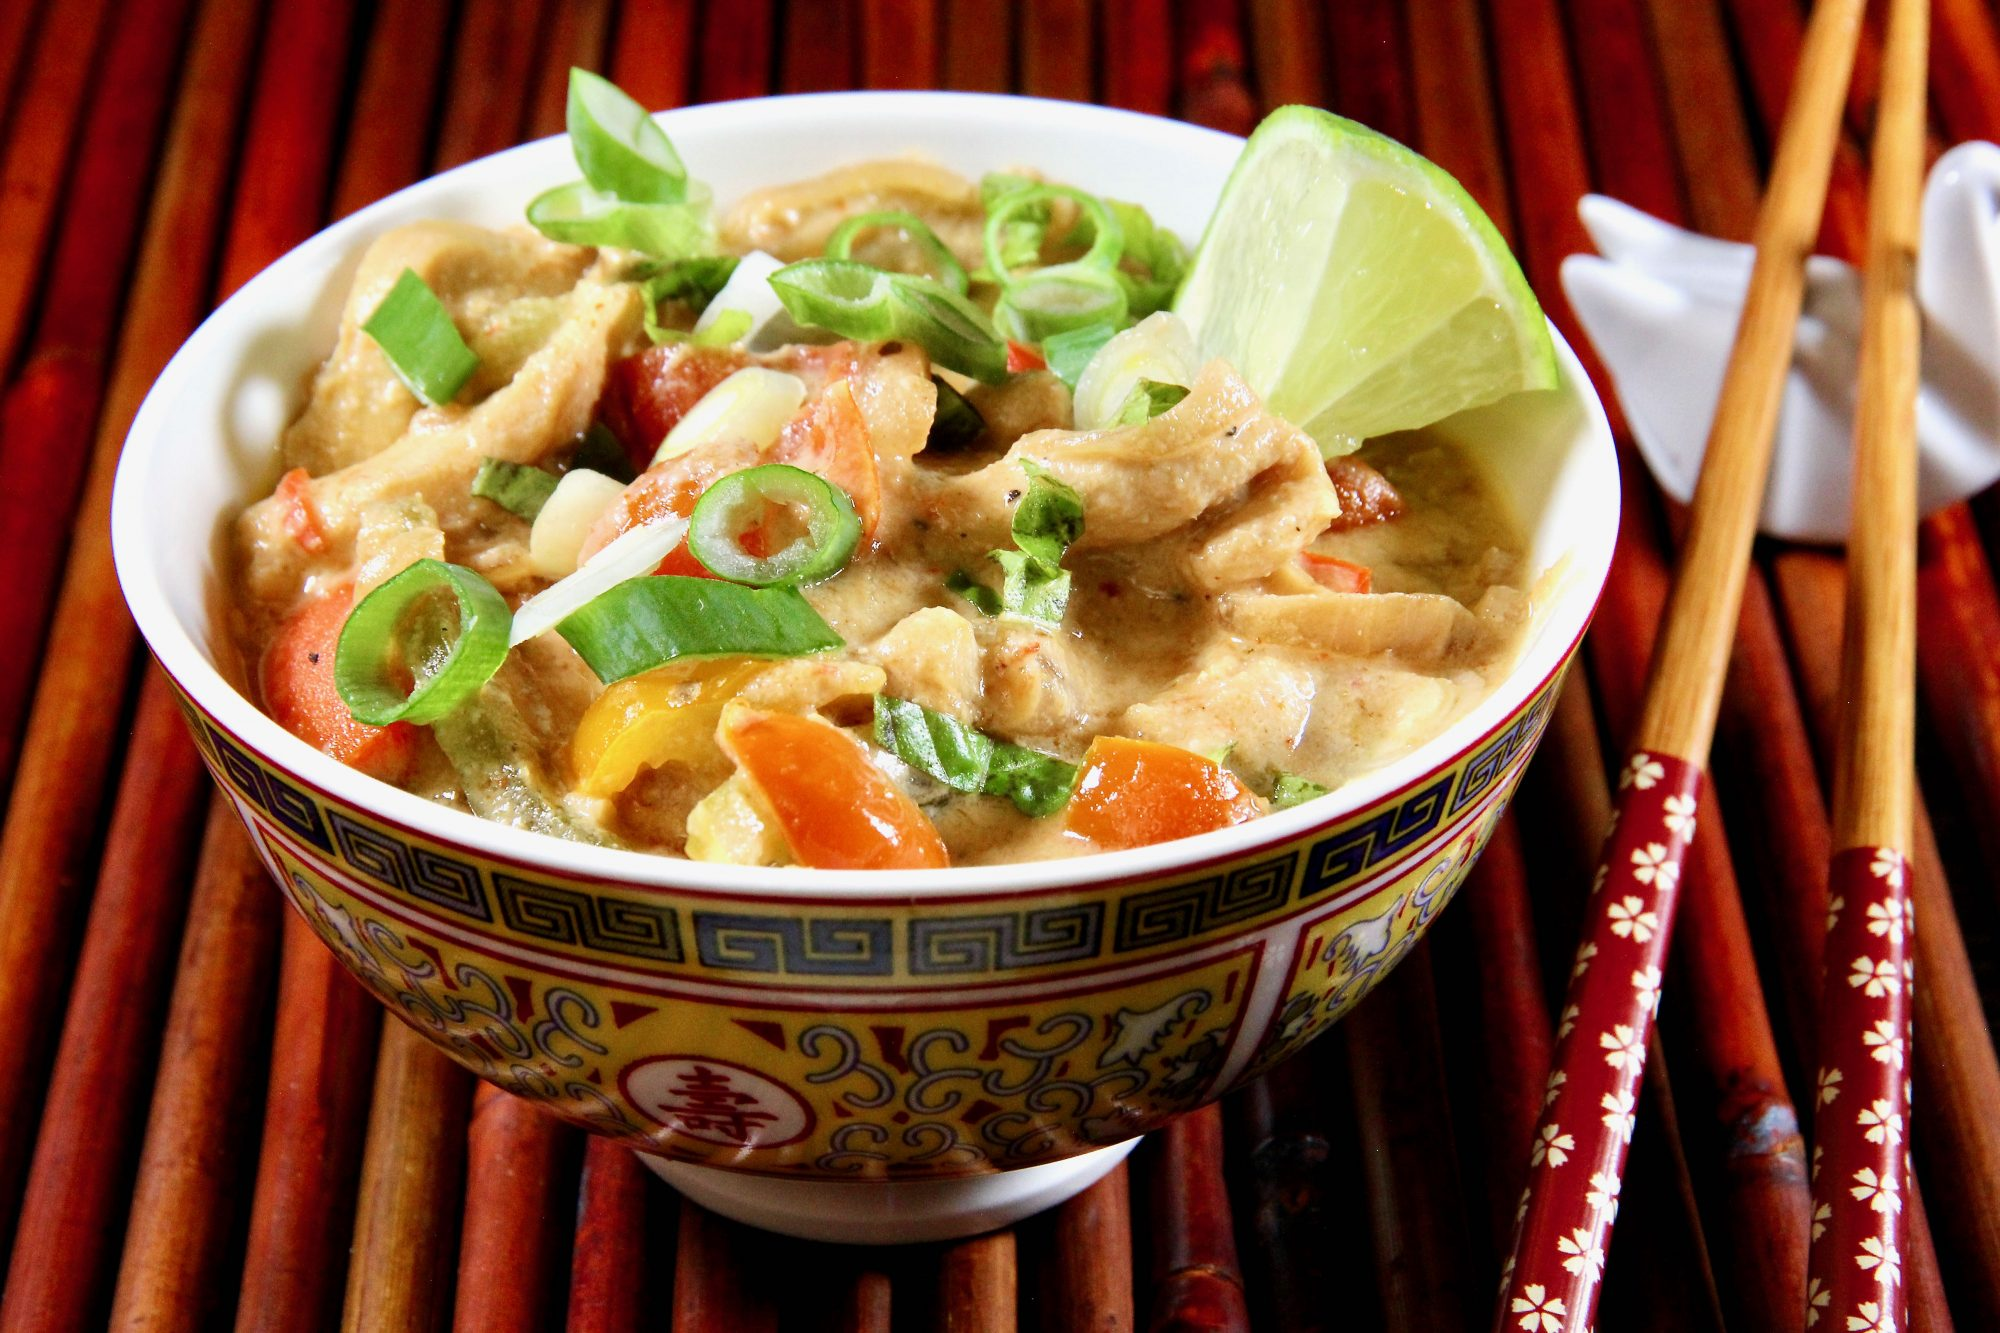 a small bowl filled with chicken breast strips, red bell pepper, and coconut milk garnished with sliced scallions and a lime wedge